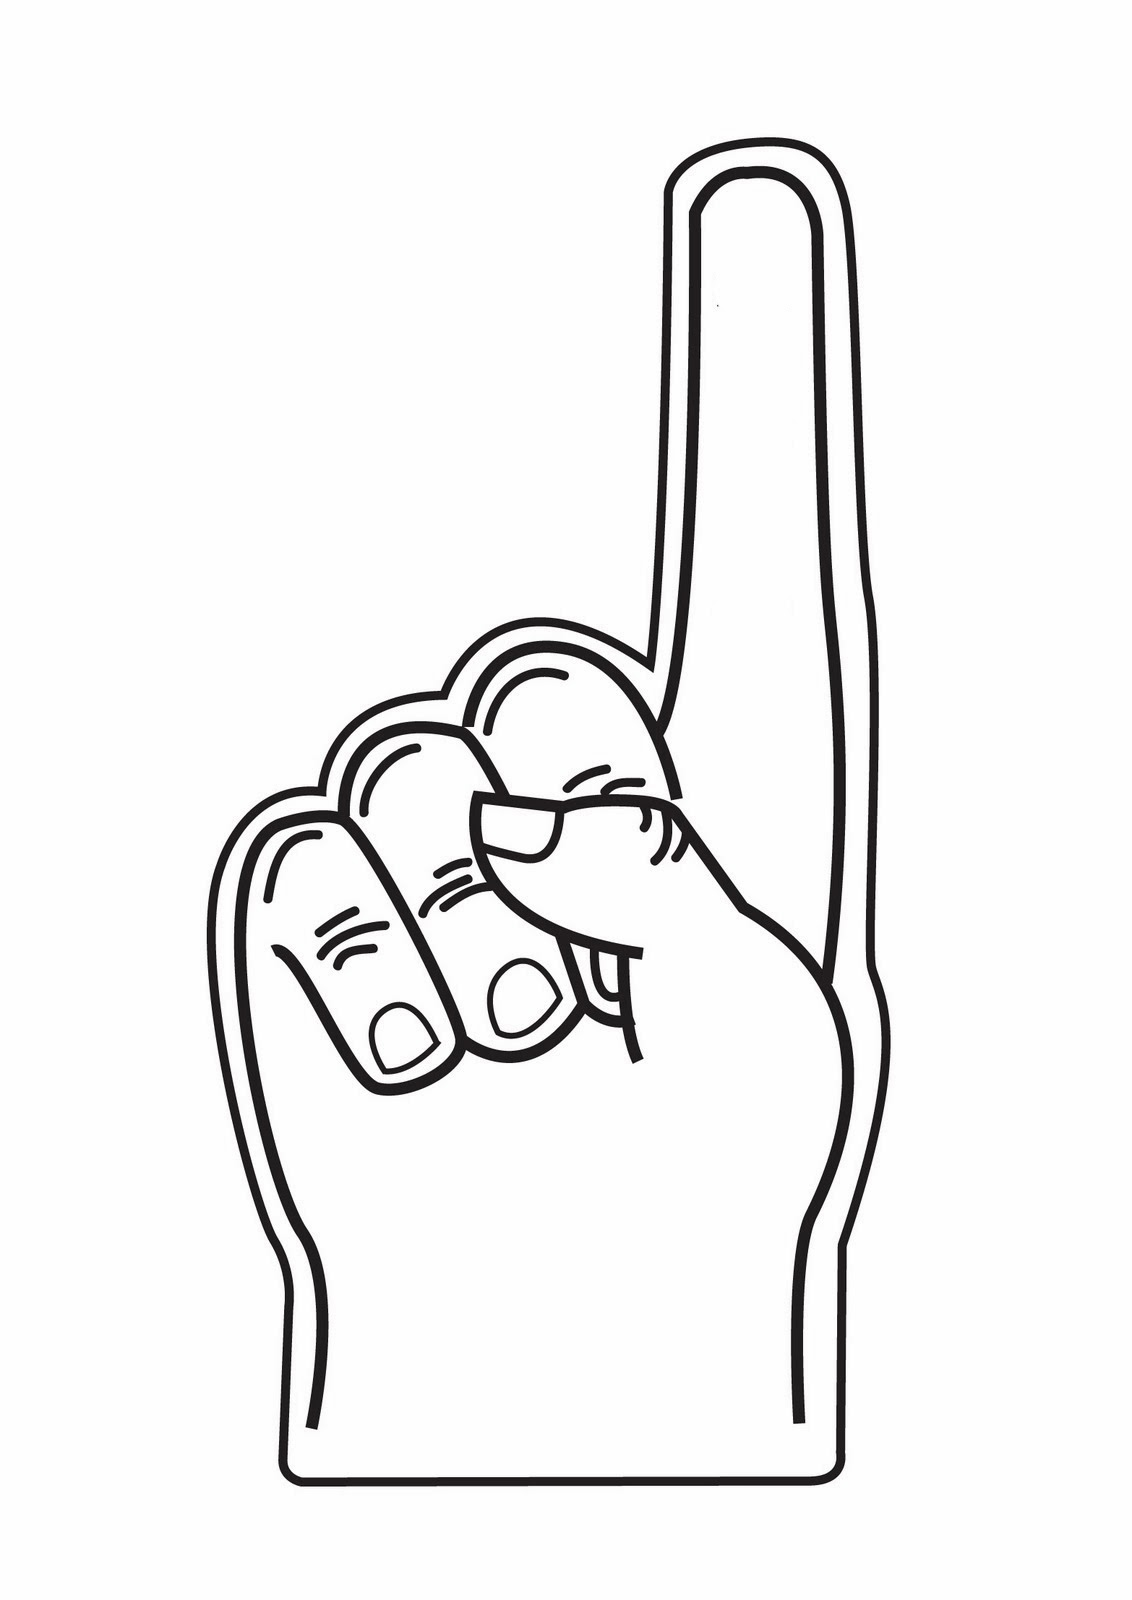 61 images of Middle Finger Clipart . You can use these free cliparts ...